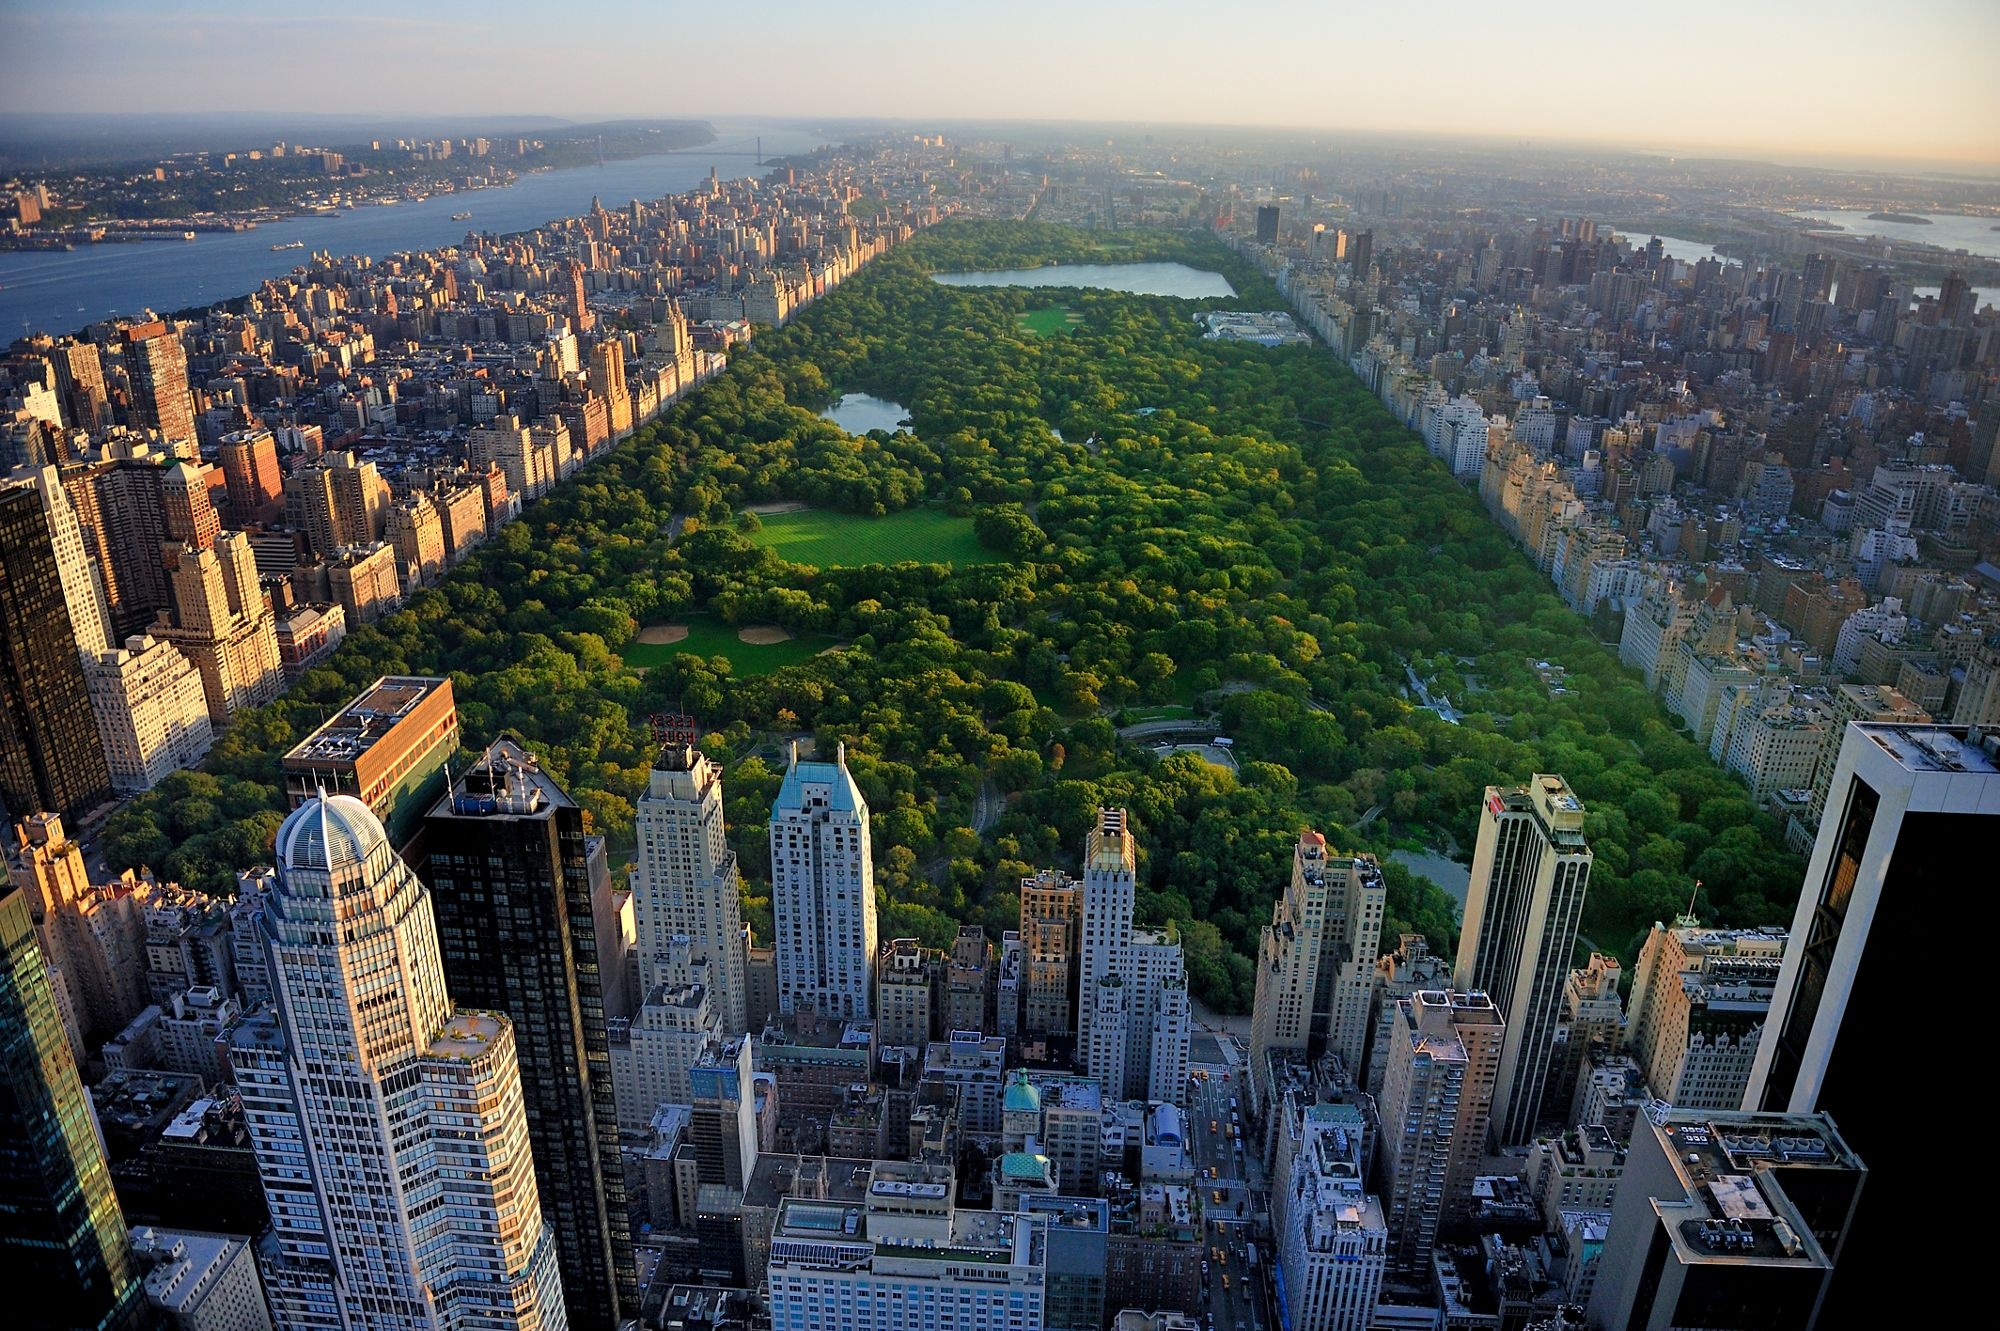 a view of central park from the ritz carlton hotel